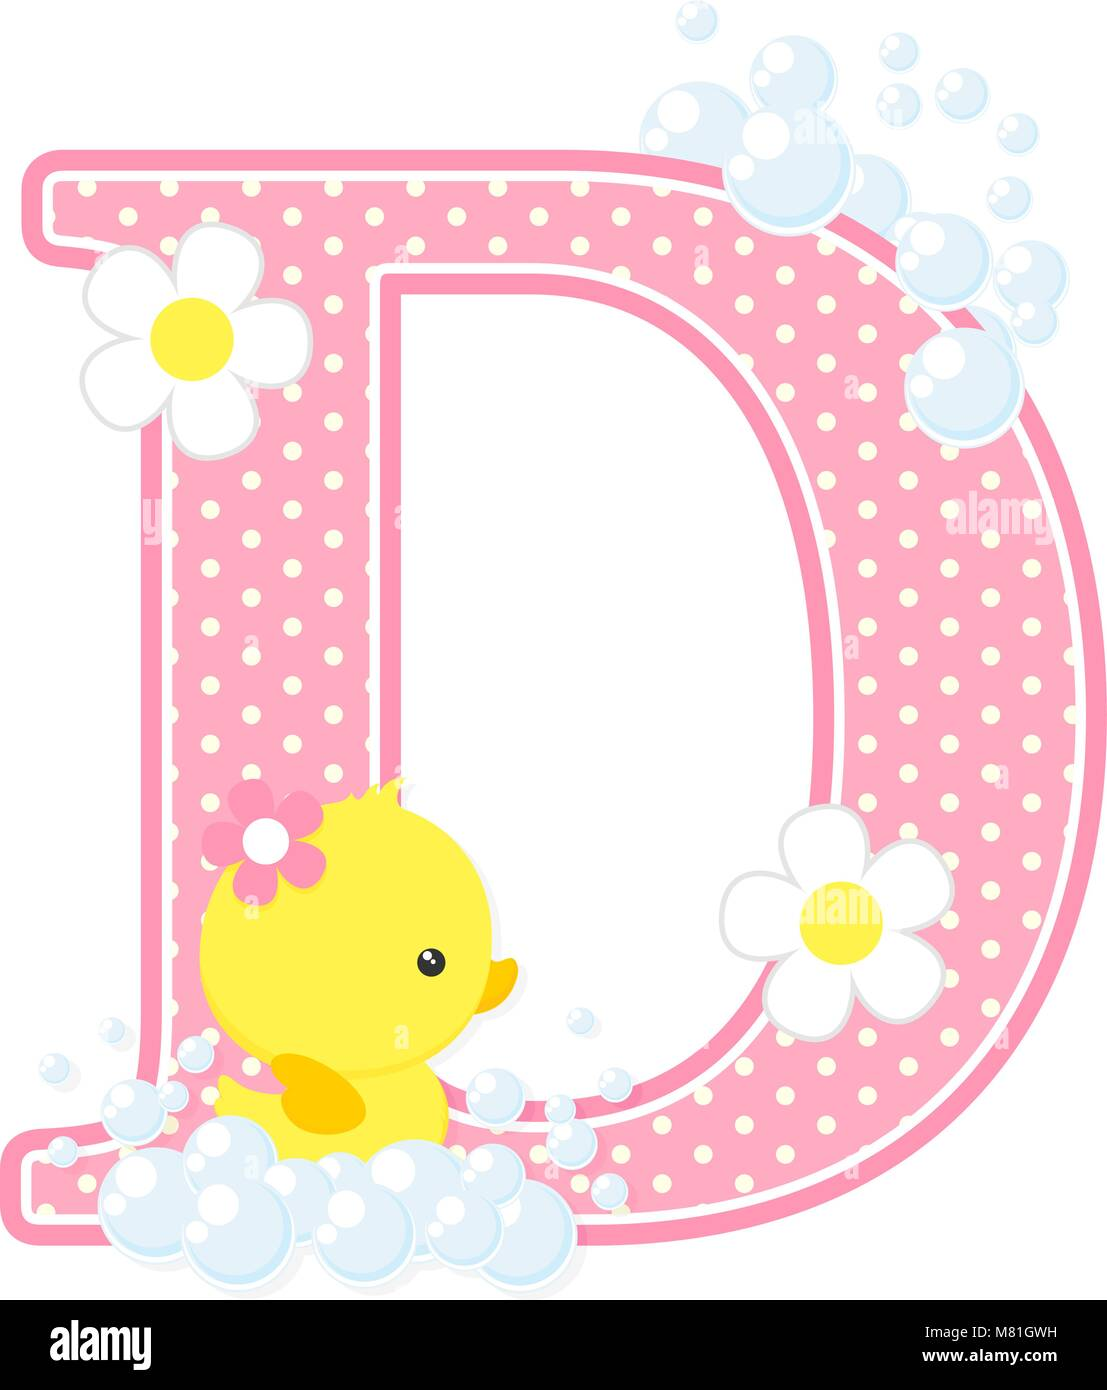 Letter D Vectors Stock Photos & Letter D Vectors Stock Images - Alamy